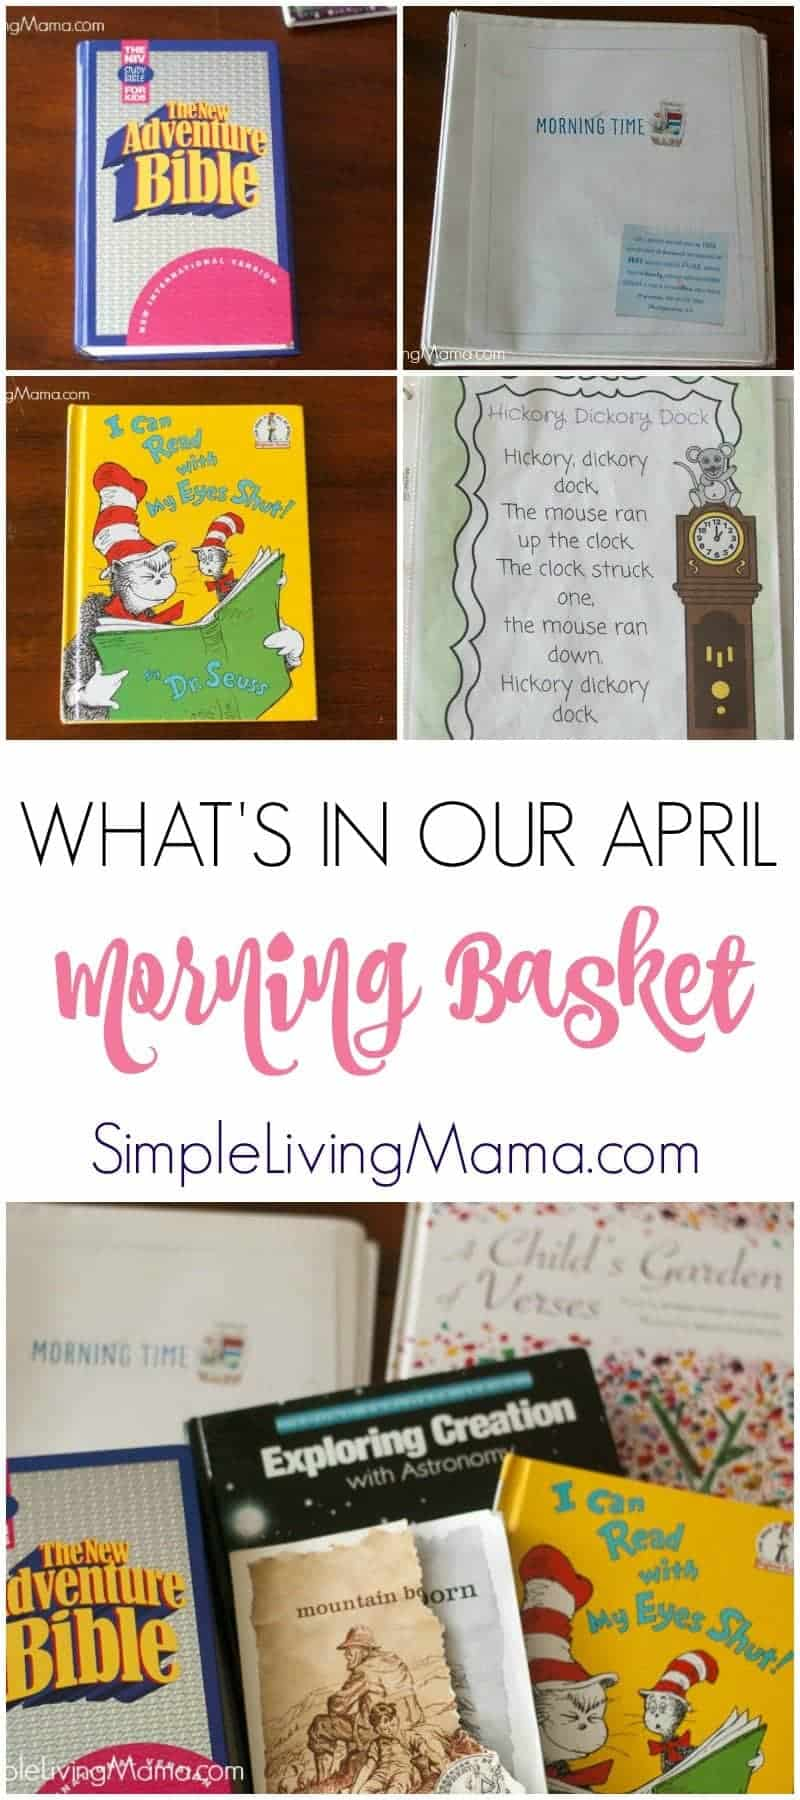 Want to see what our large family is using for our homeschool morning time? Here's a glimpse at our homeschool morning basket for the month of April.